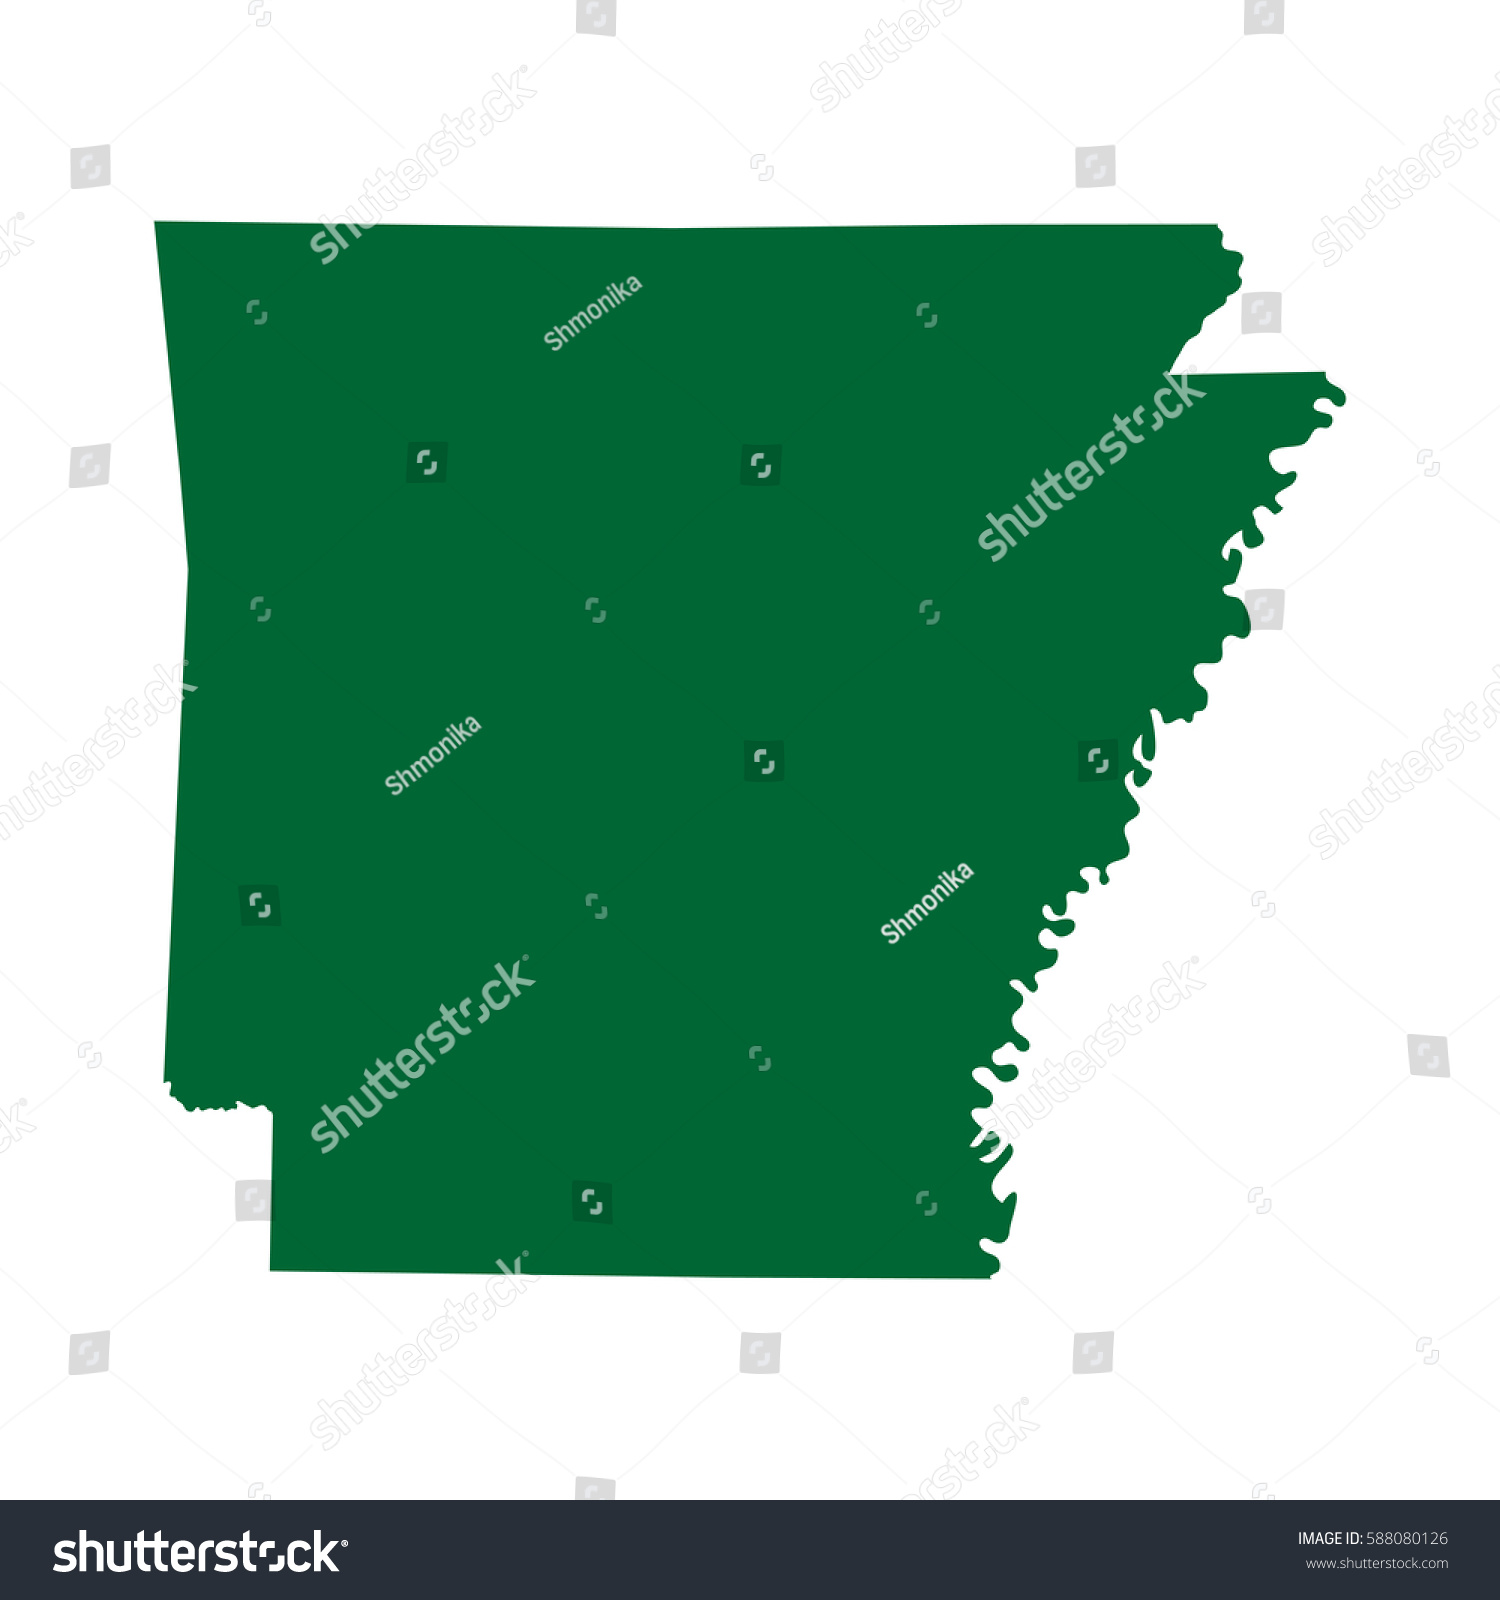 Map Us State Arkansas Stock Vector Shutterstock - Arkansas on a us map